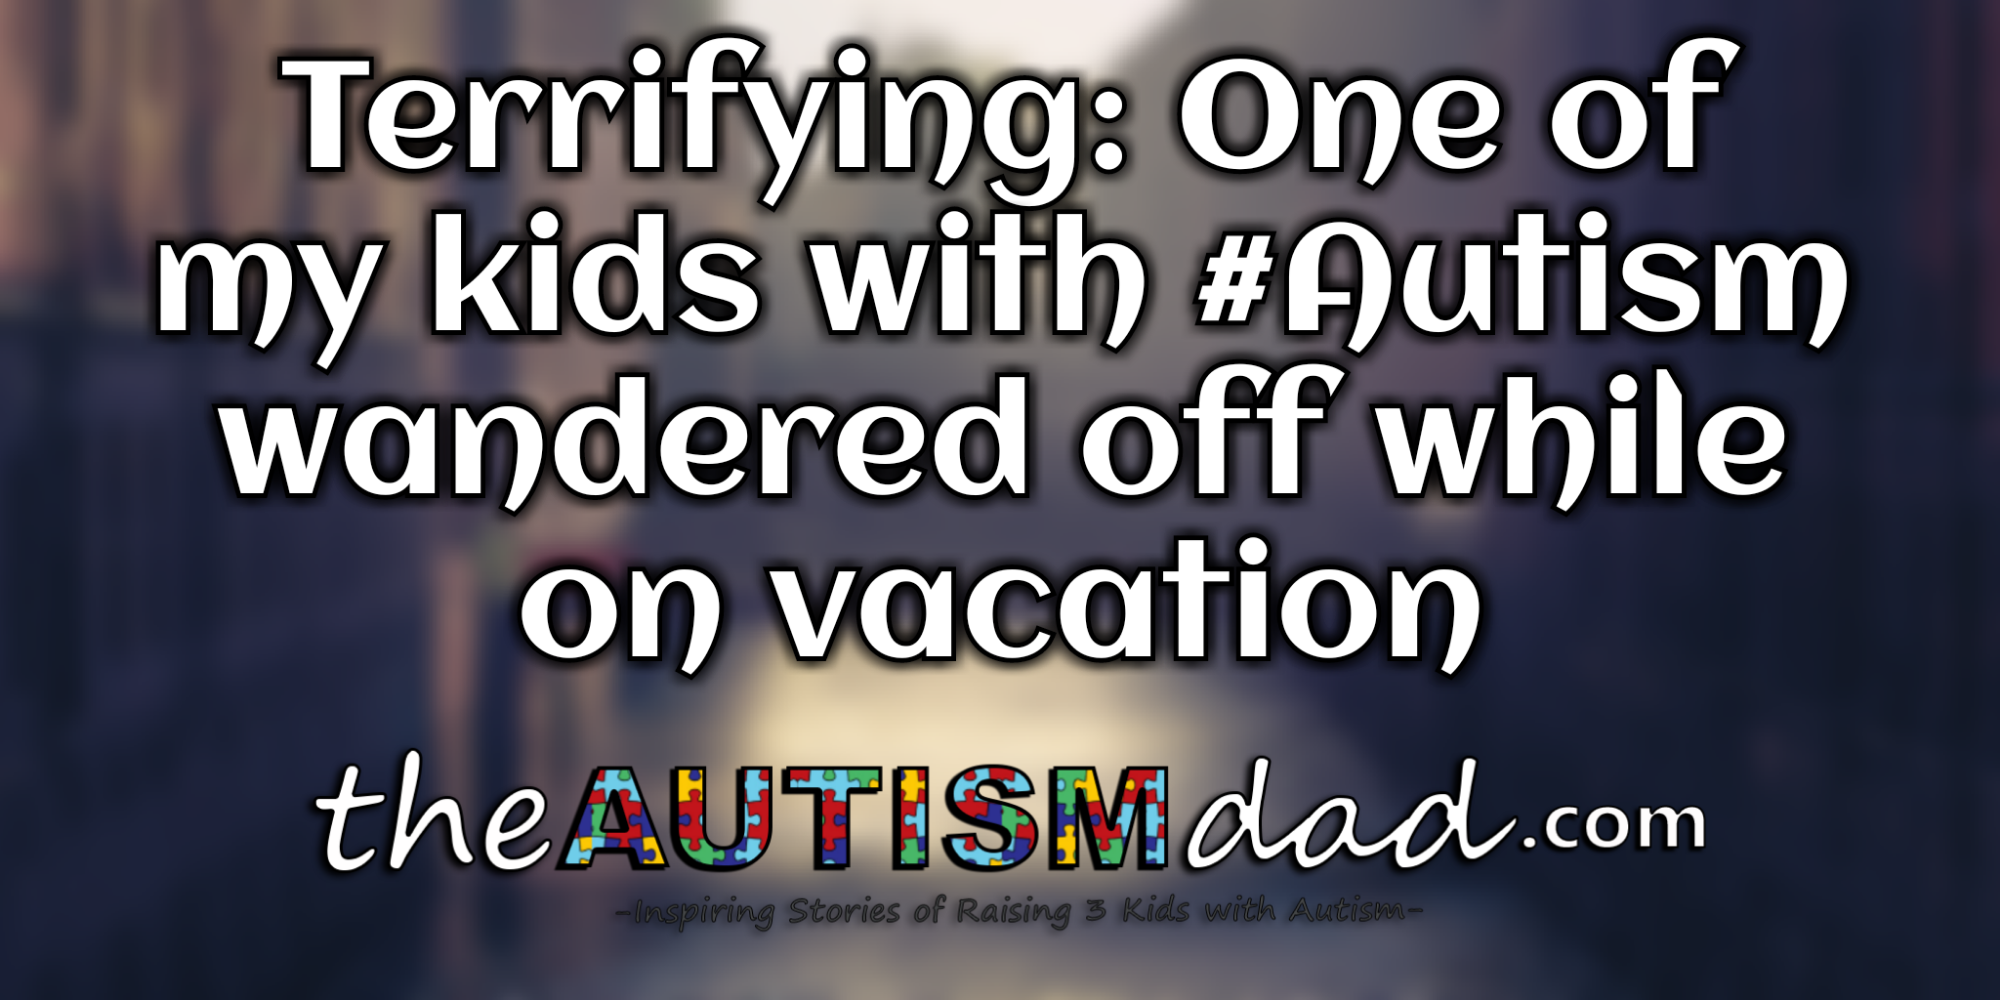 Terrifying: One of my kids with #Autism wandered off while on vacation